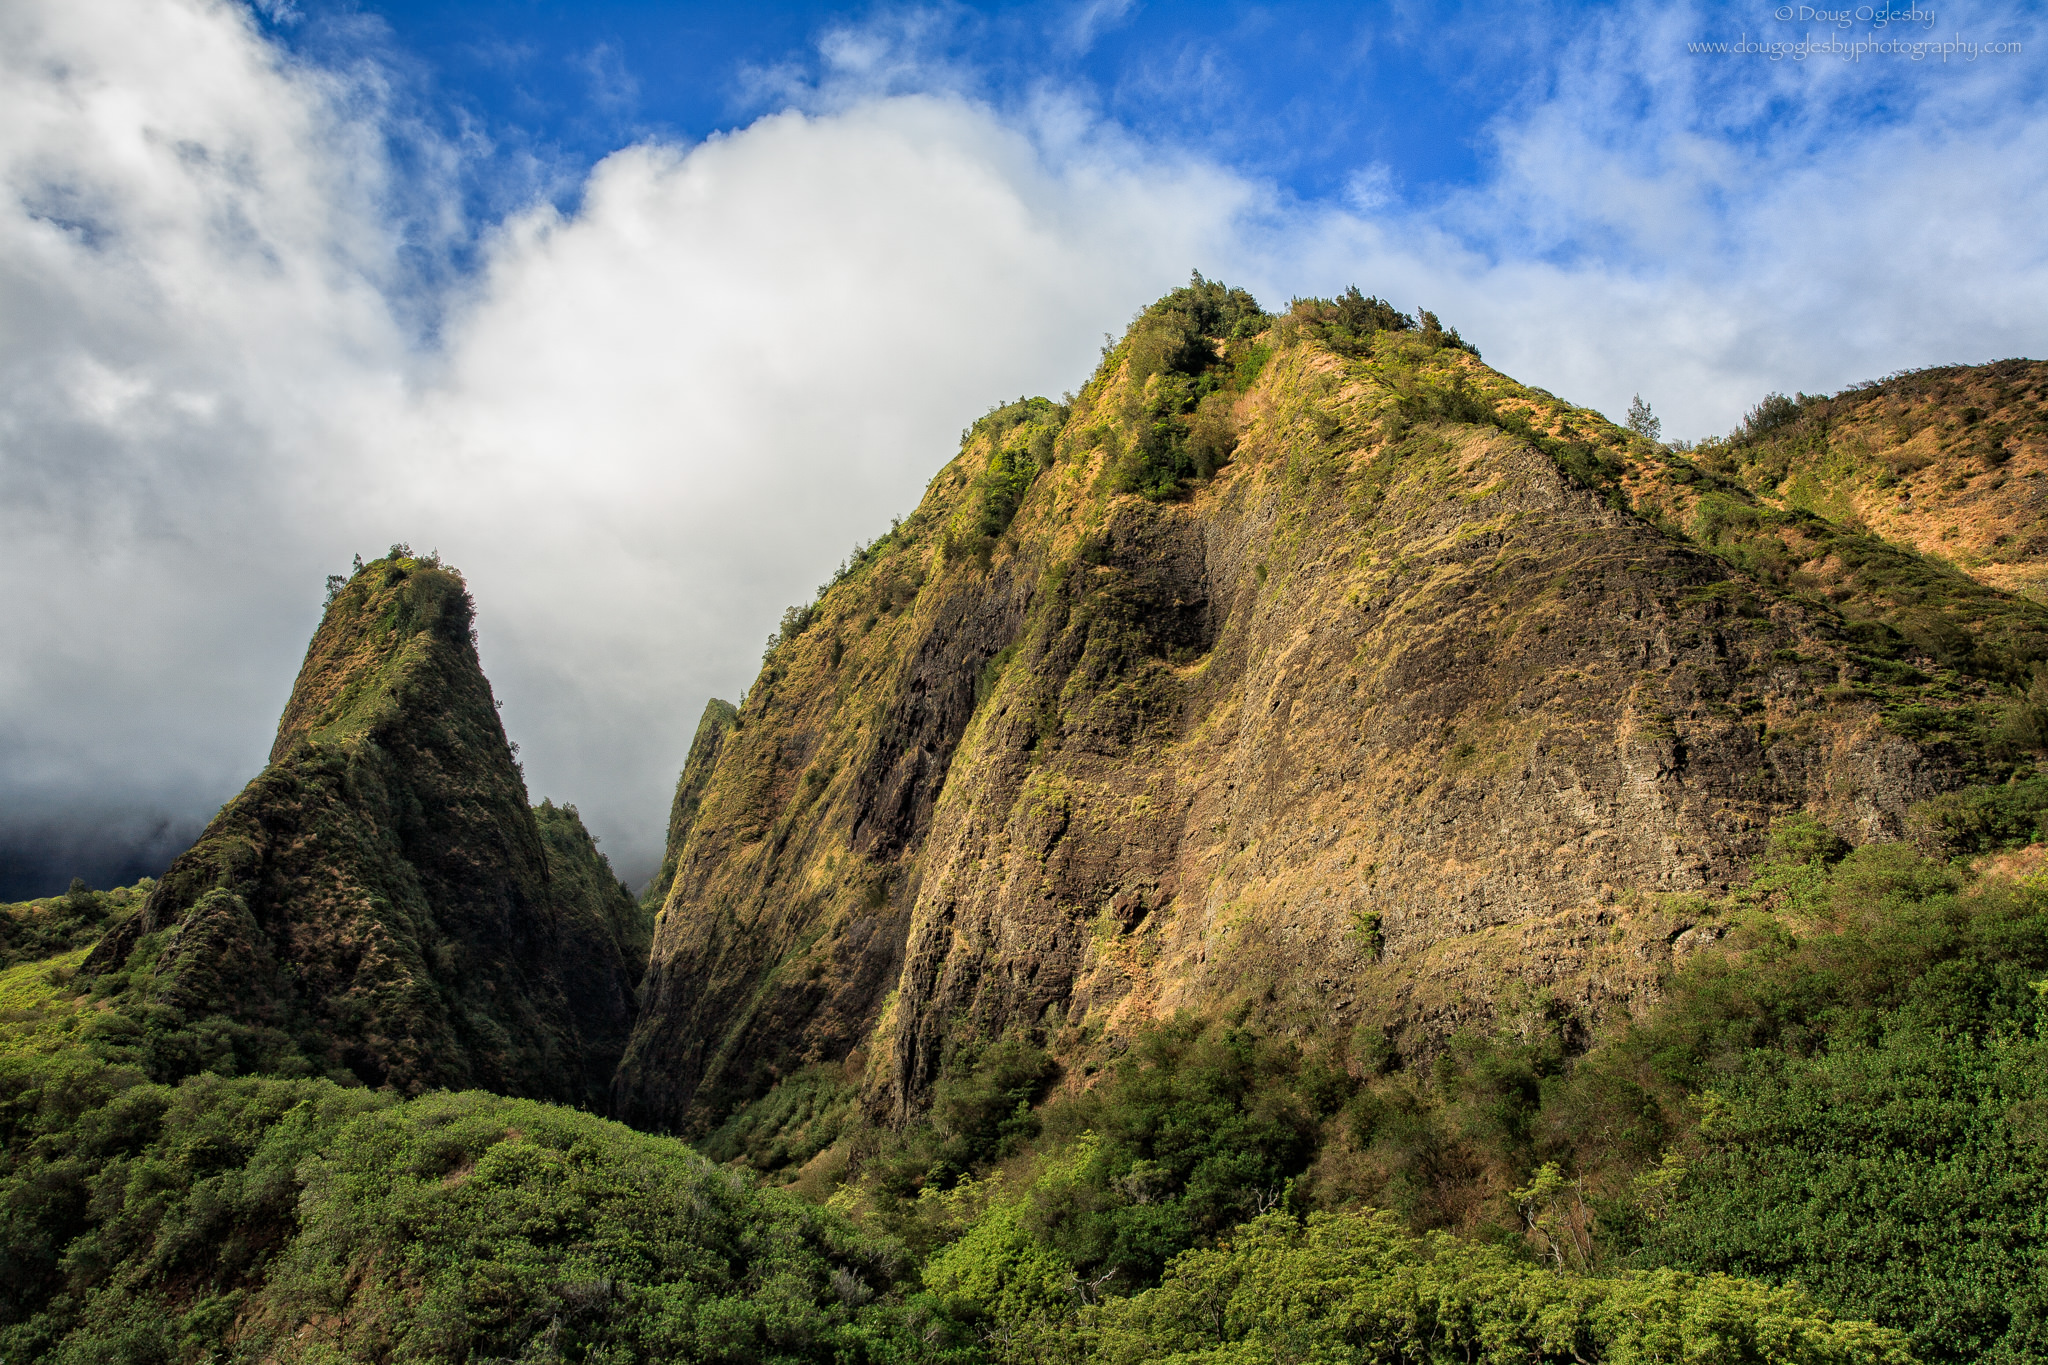 'lao Valley and The Needle on Mau'i, where the great battle of Kepaniwai was fought in 1790. © Photograph by Doug Oglesby @ https://photographyworld.org/nature/early-hawaii-history/